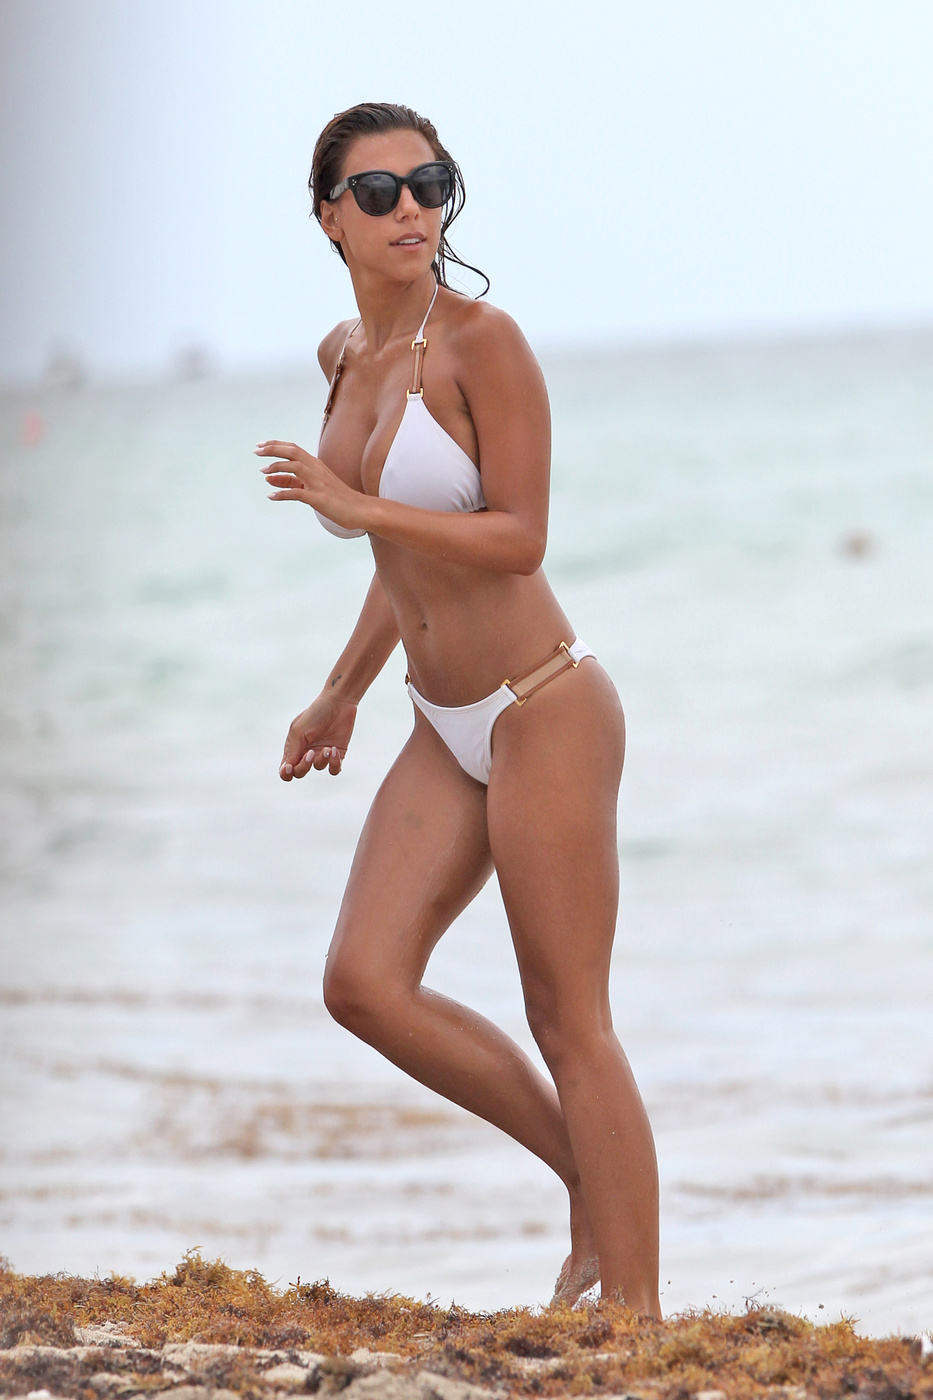 Natasha Oakley and Devin Brugman Looking Hot in a bikinis -03 - Full    Natasha Oakley Hot